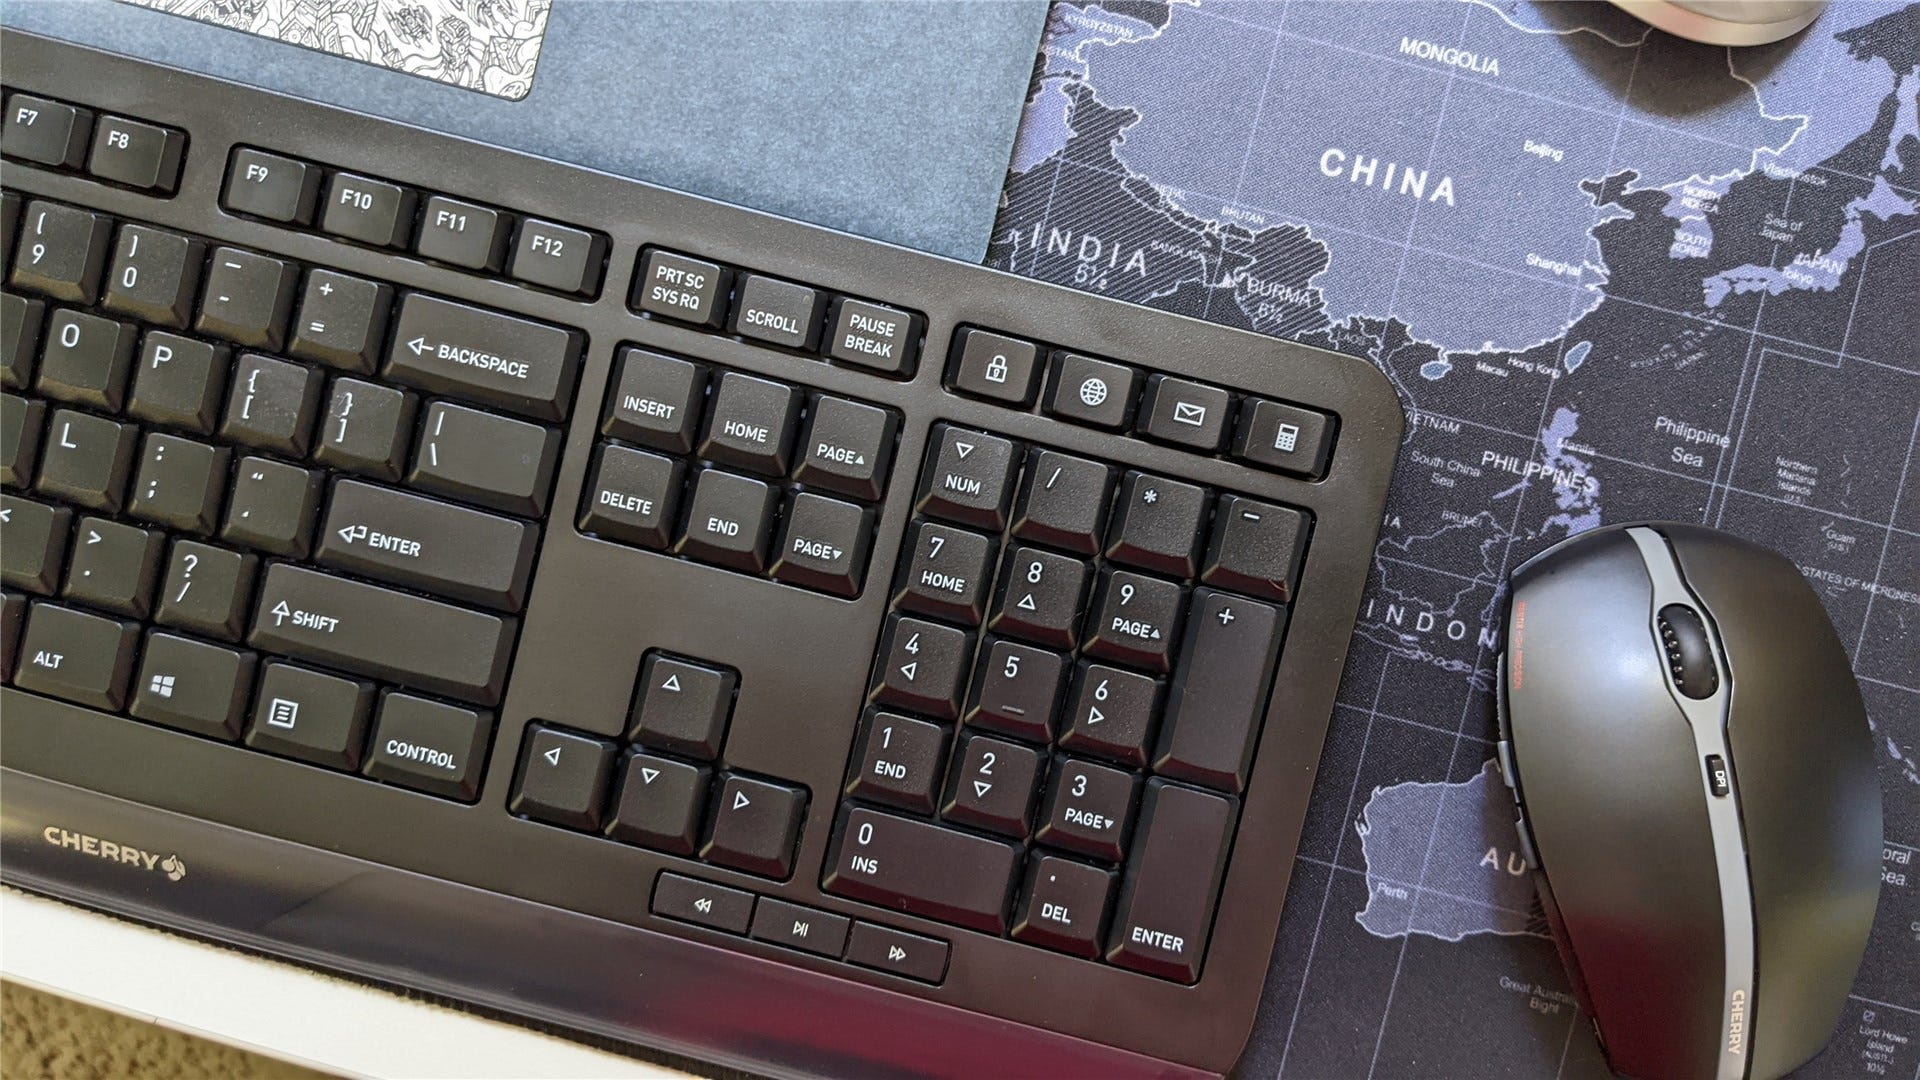 The Gentix keyboard and mouse set